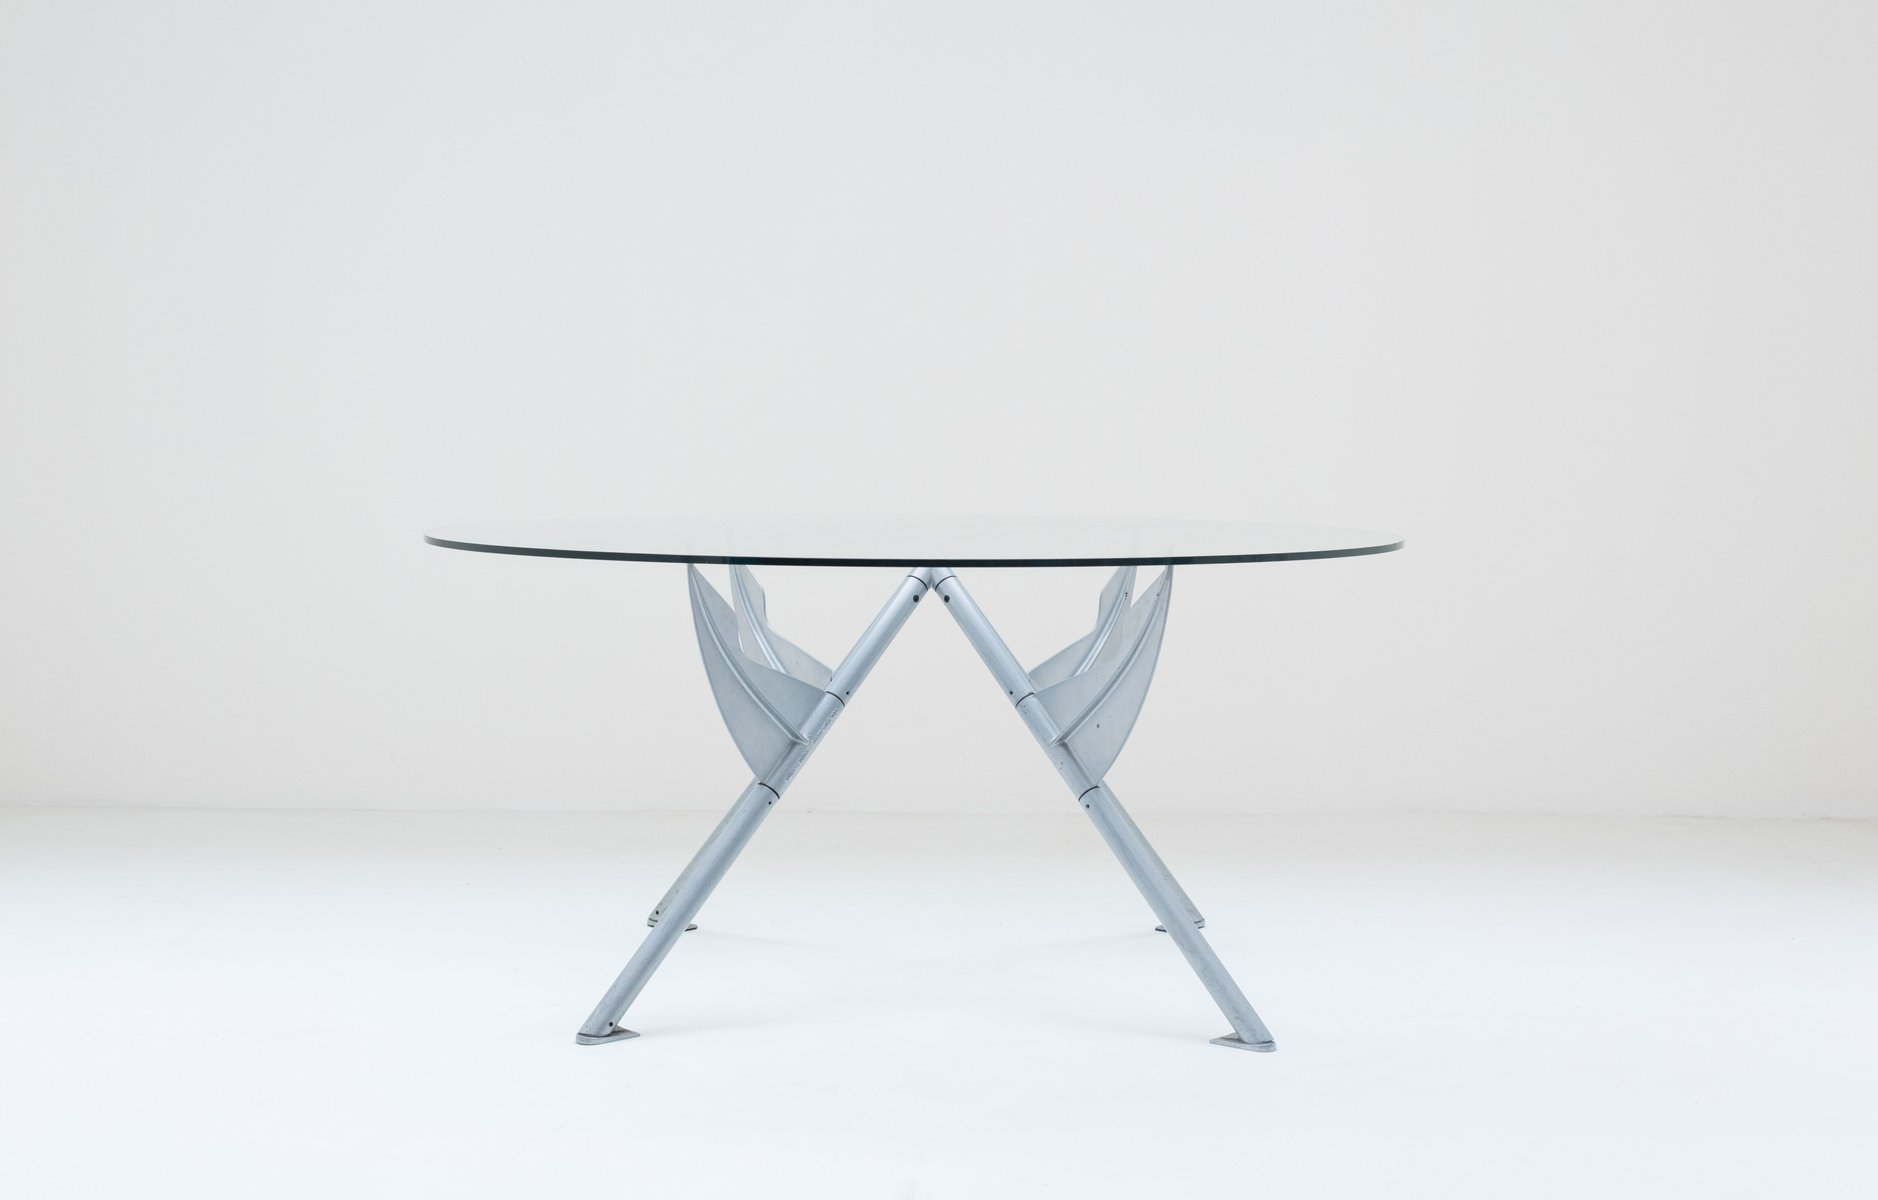 Philip Starck Dining Table By Philippe Starck For Cerruti Baleri 1984